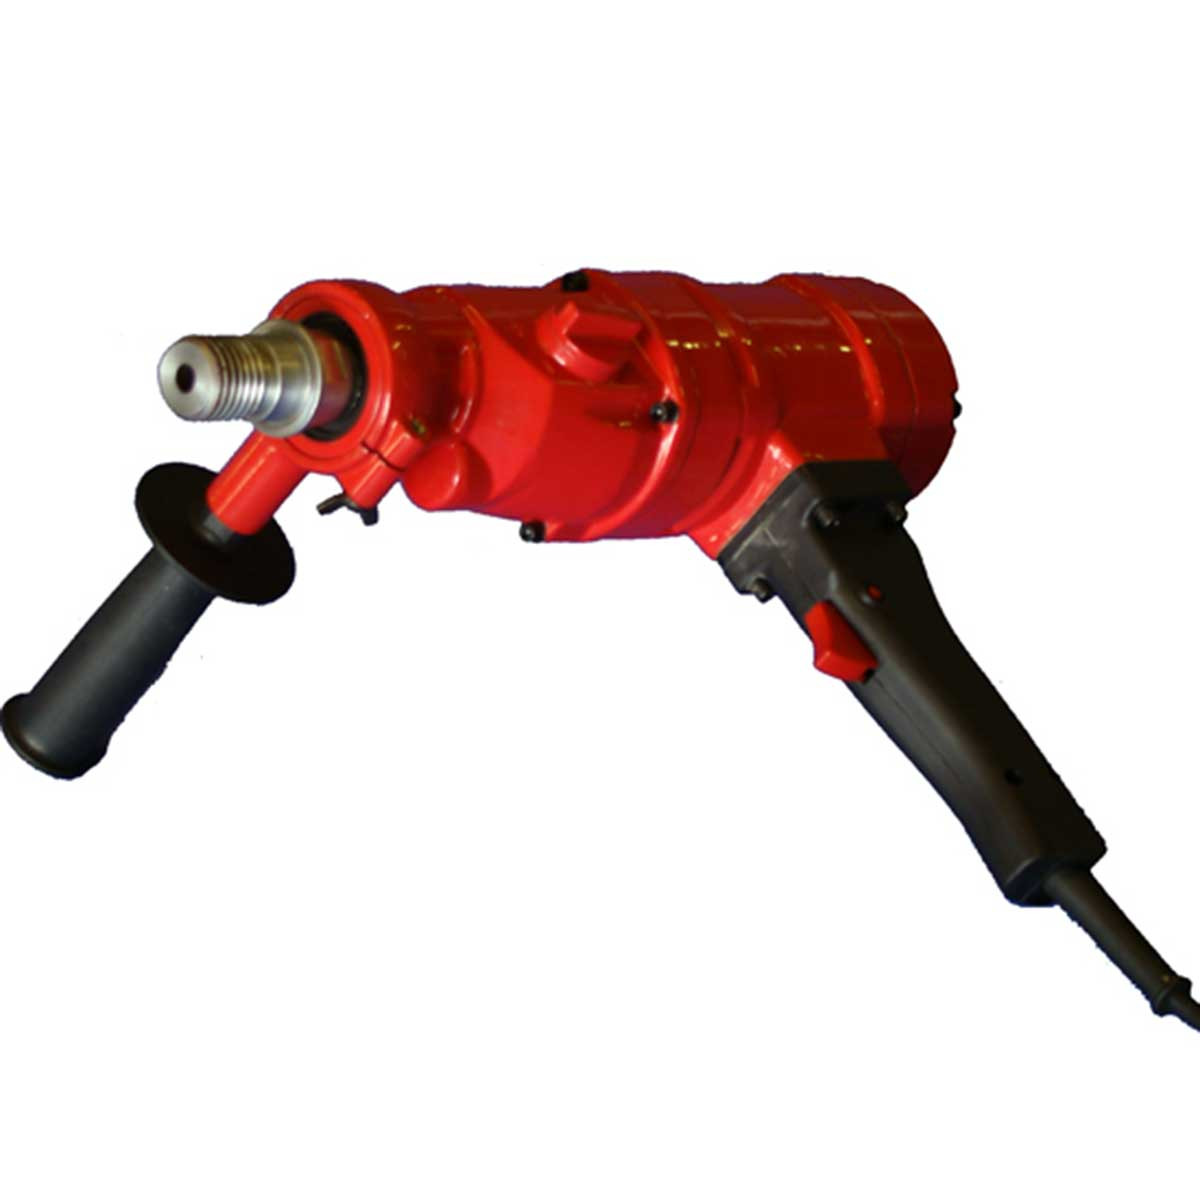 Kor-It 3 Speed Hand-Held Core Drill